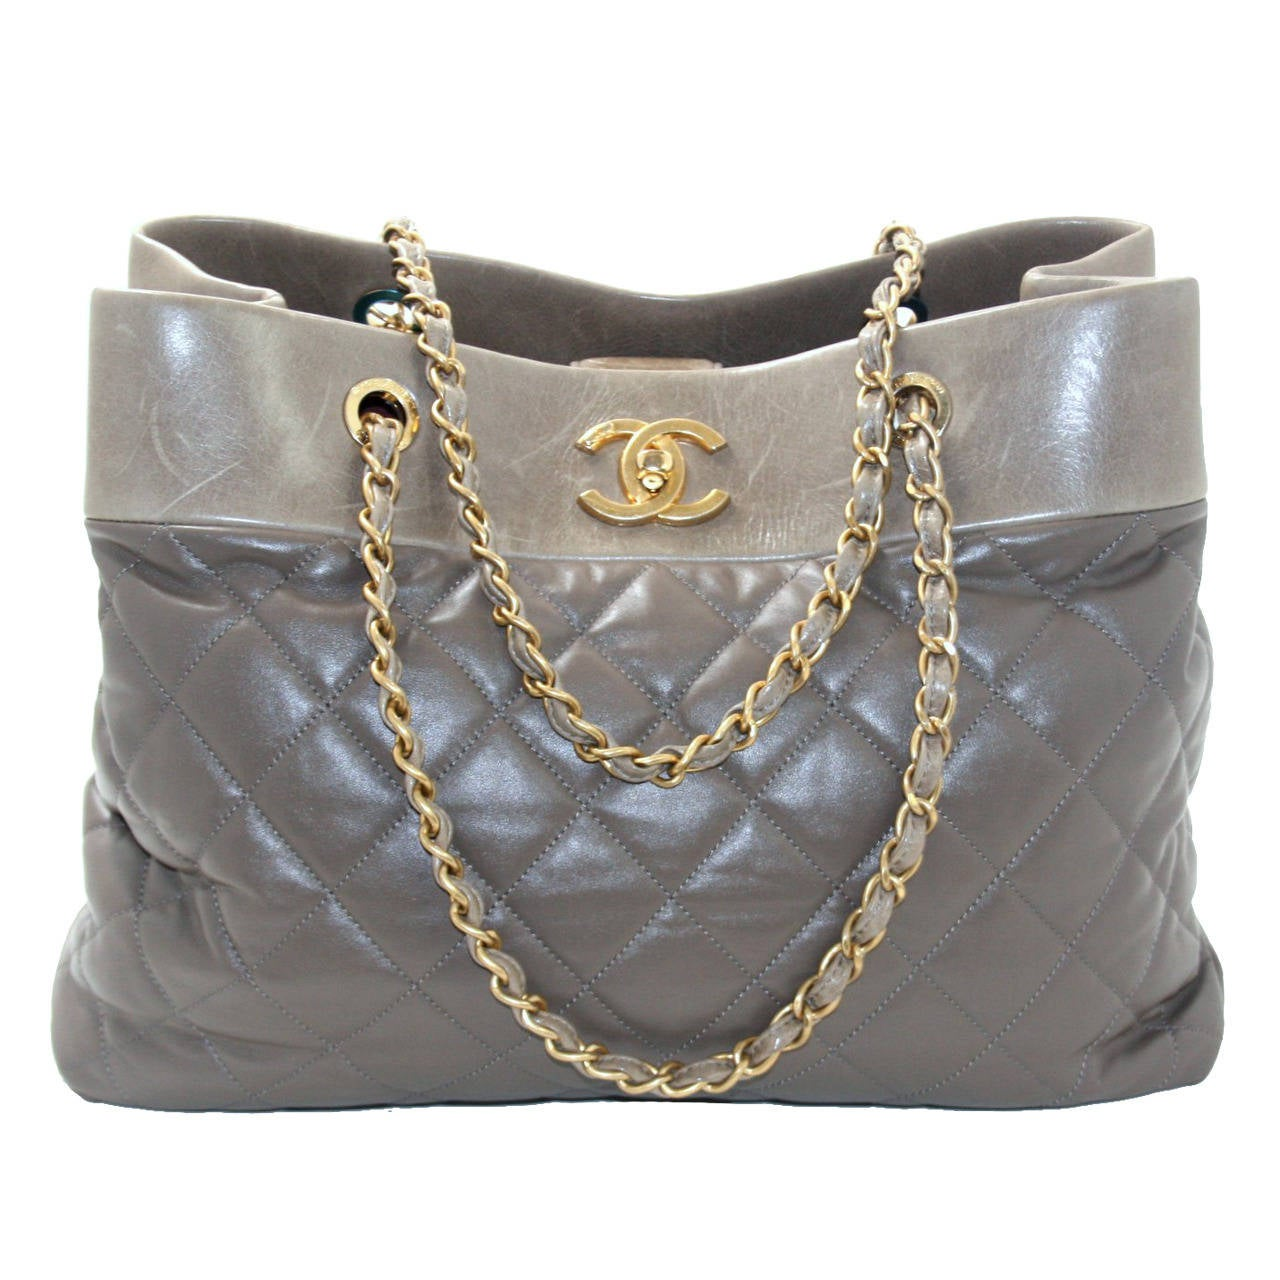 Chanel Taupe Leather Soft Elegance Large Tote At 1stdibs